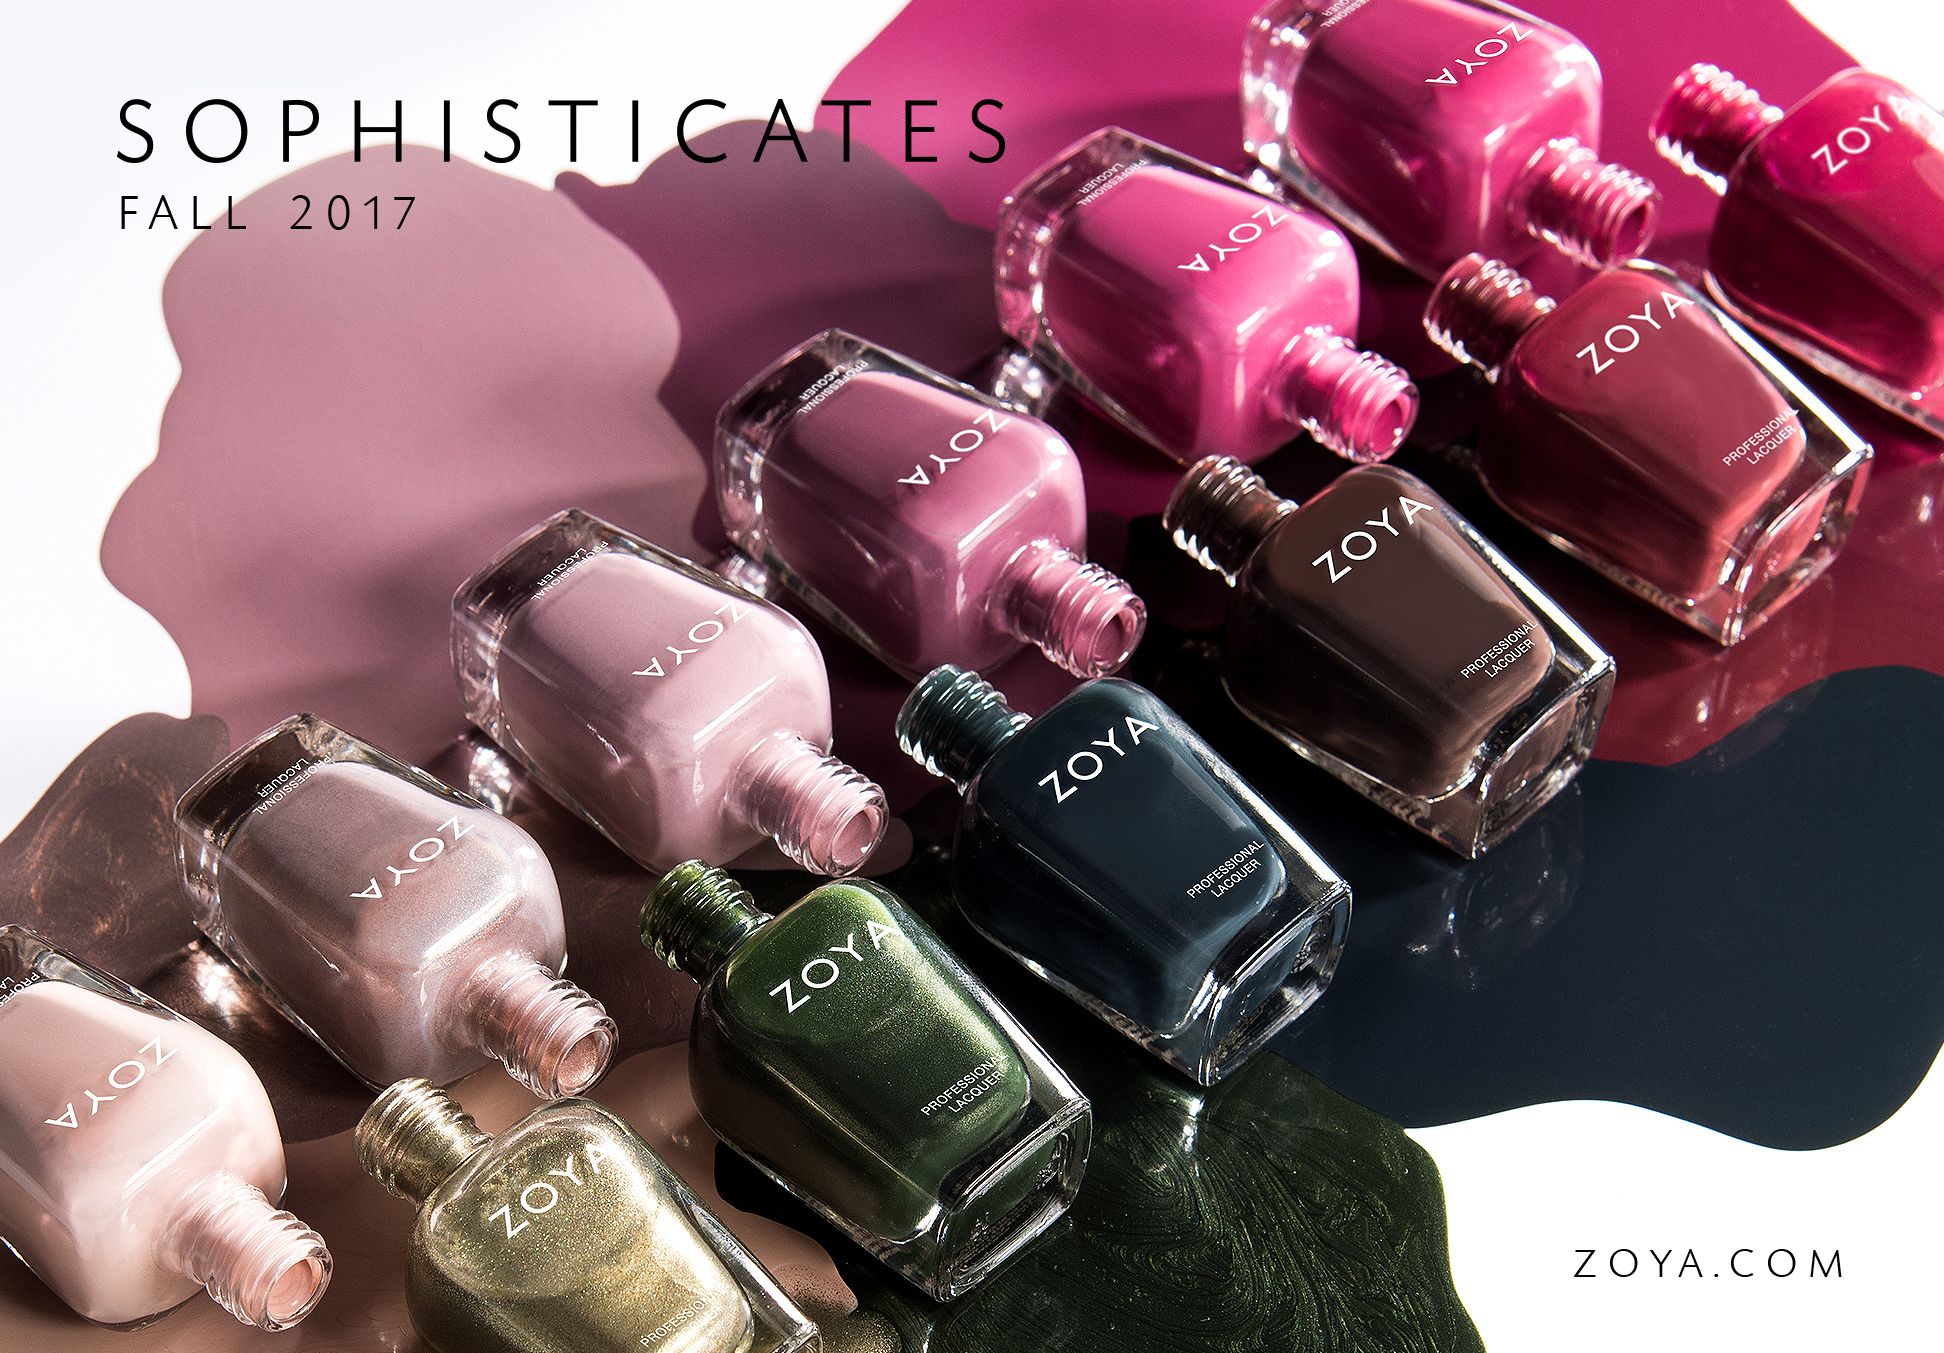 Sophisticates collection by zoya model city polish sophisticates collection by zoya reheart Choice Image